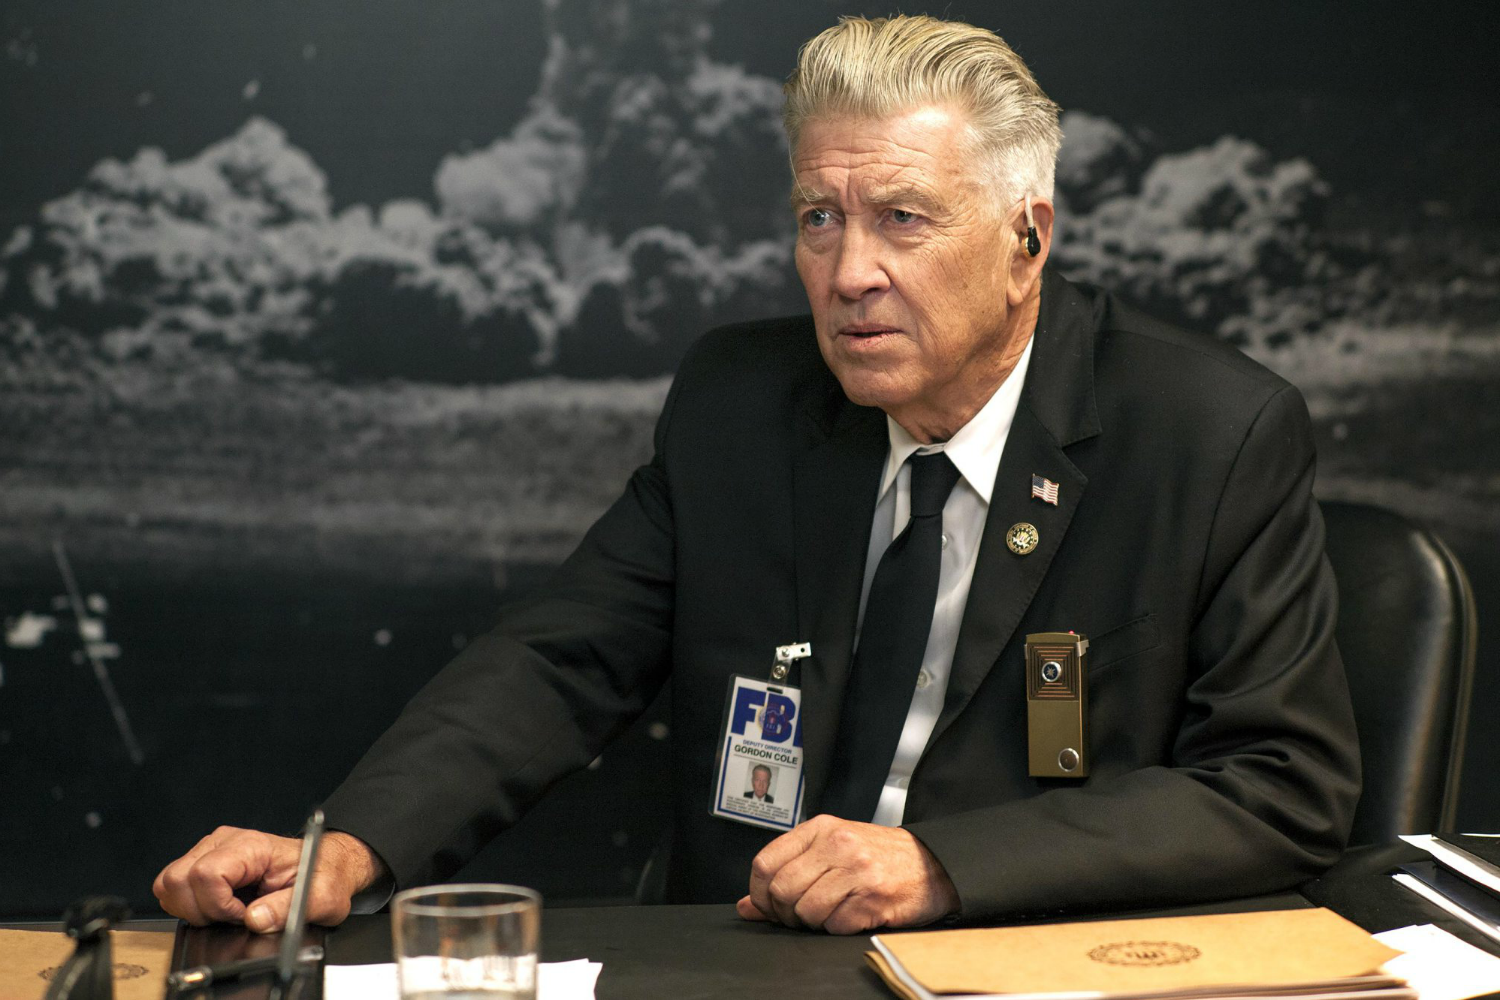 twinpeaksepisode7 3 - David Lynch Teases Another Chapter of Twin Peaks... But Don't Hold Your Breath